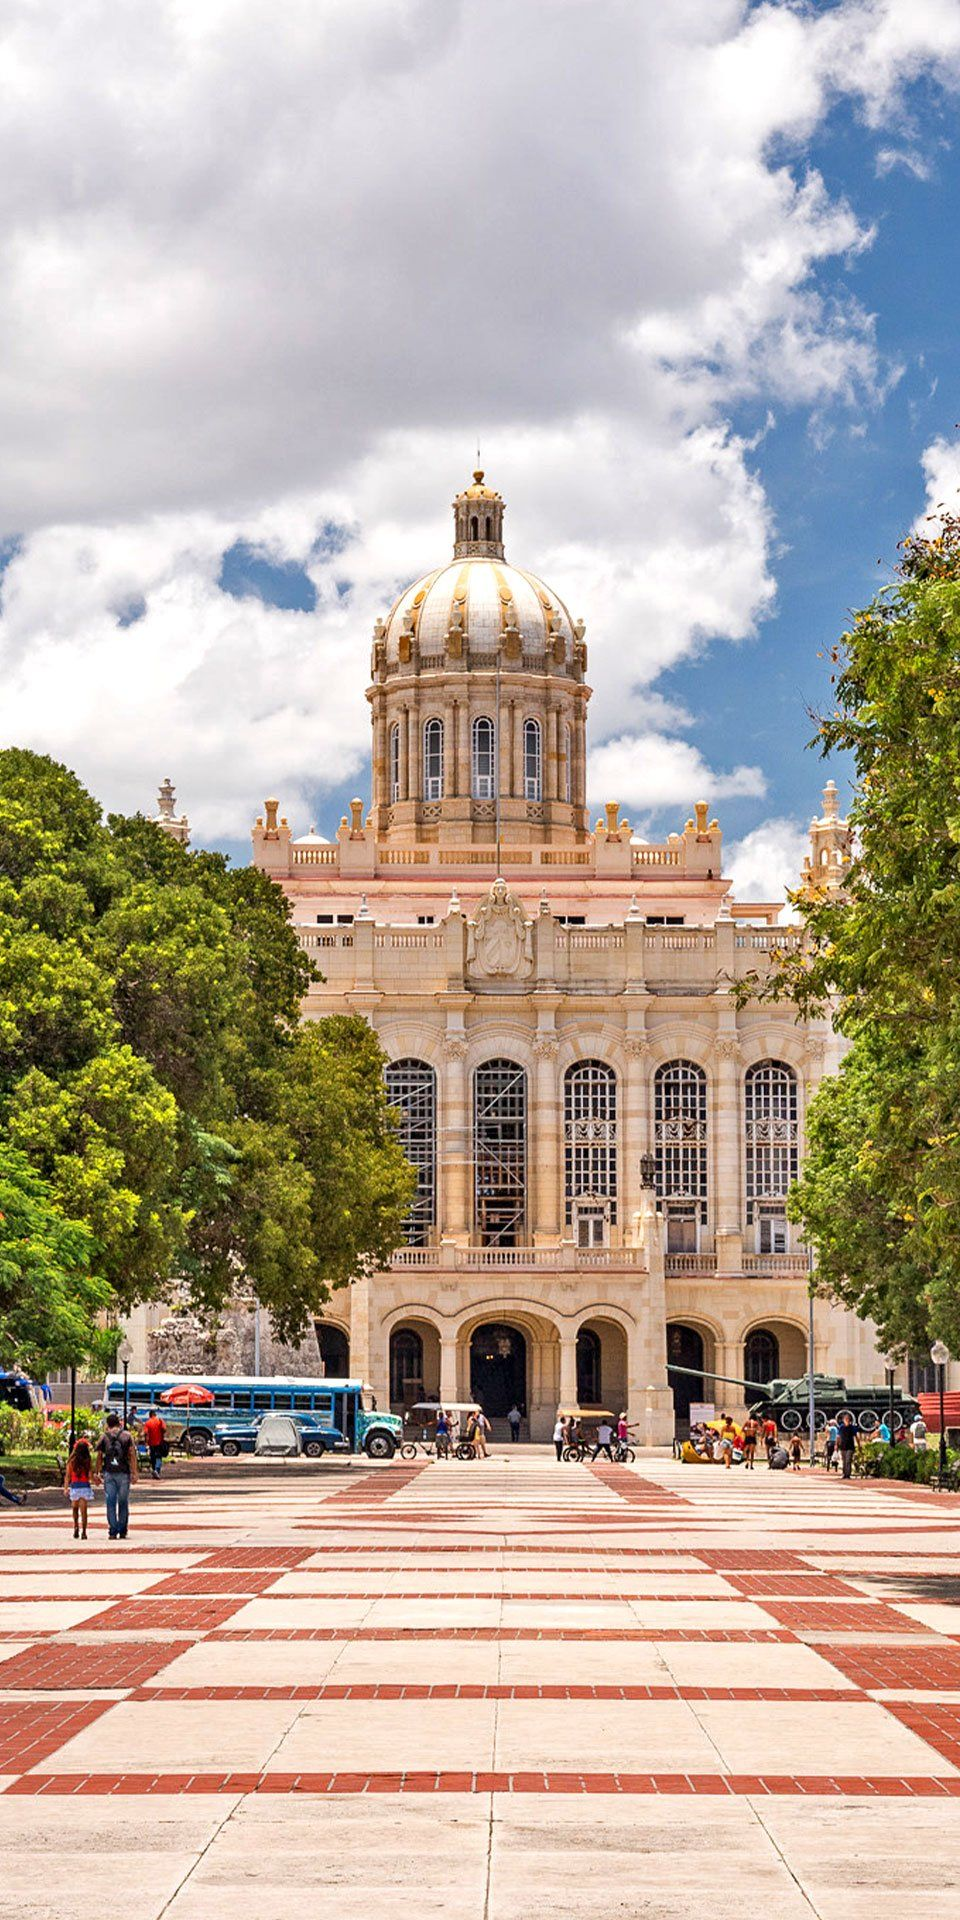 Havana, Cuba | What would you do with 8 hours in Cuba? Step into history. Walk around Old Havana to check out historical architecture and culture, and visit local landmarks such as the Museum of the Revolution to learn more about the island's past.